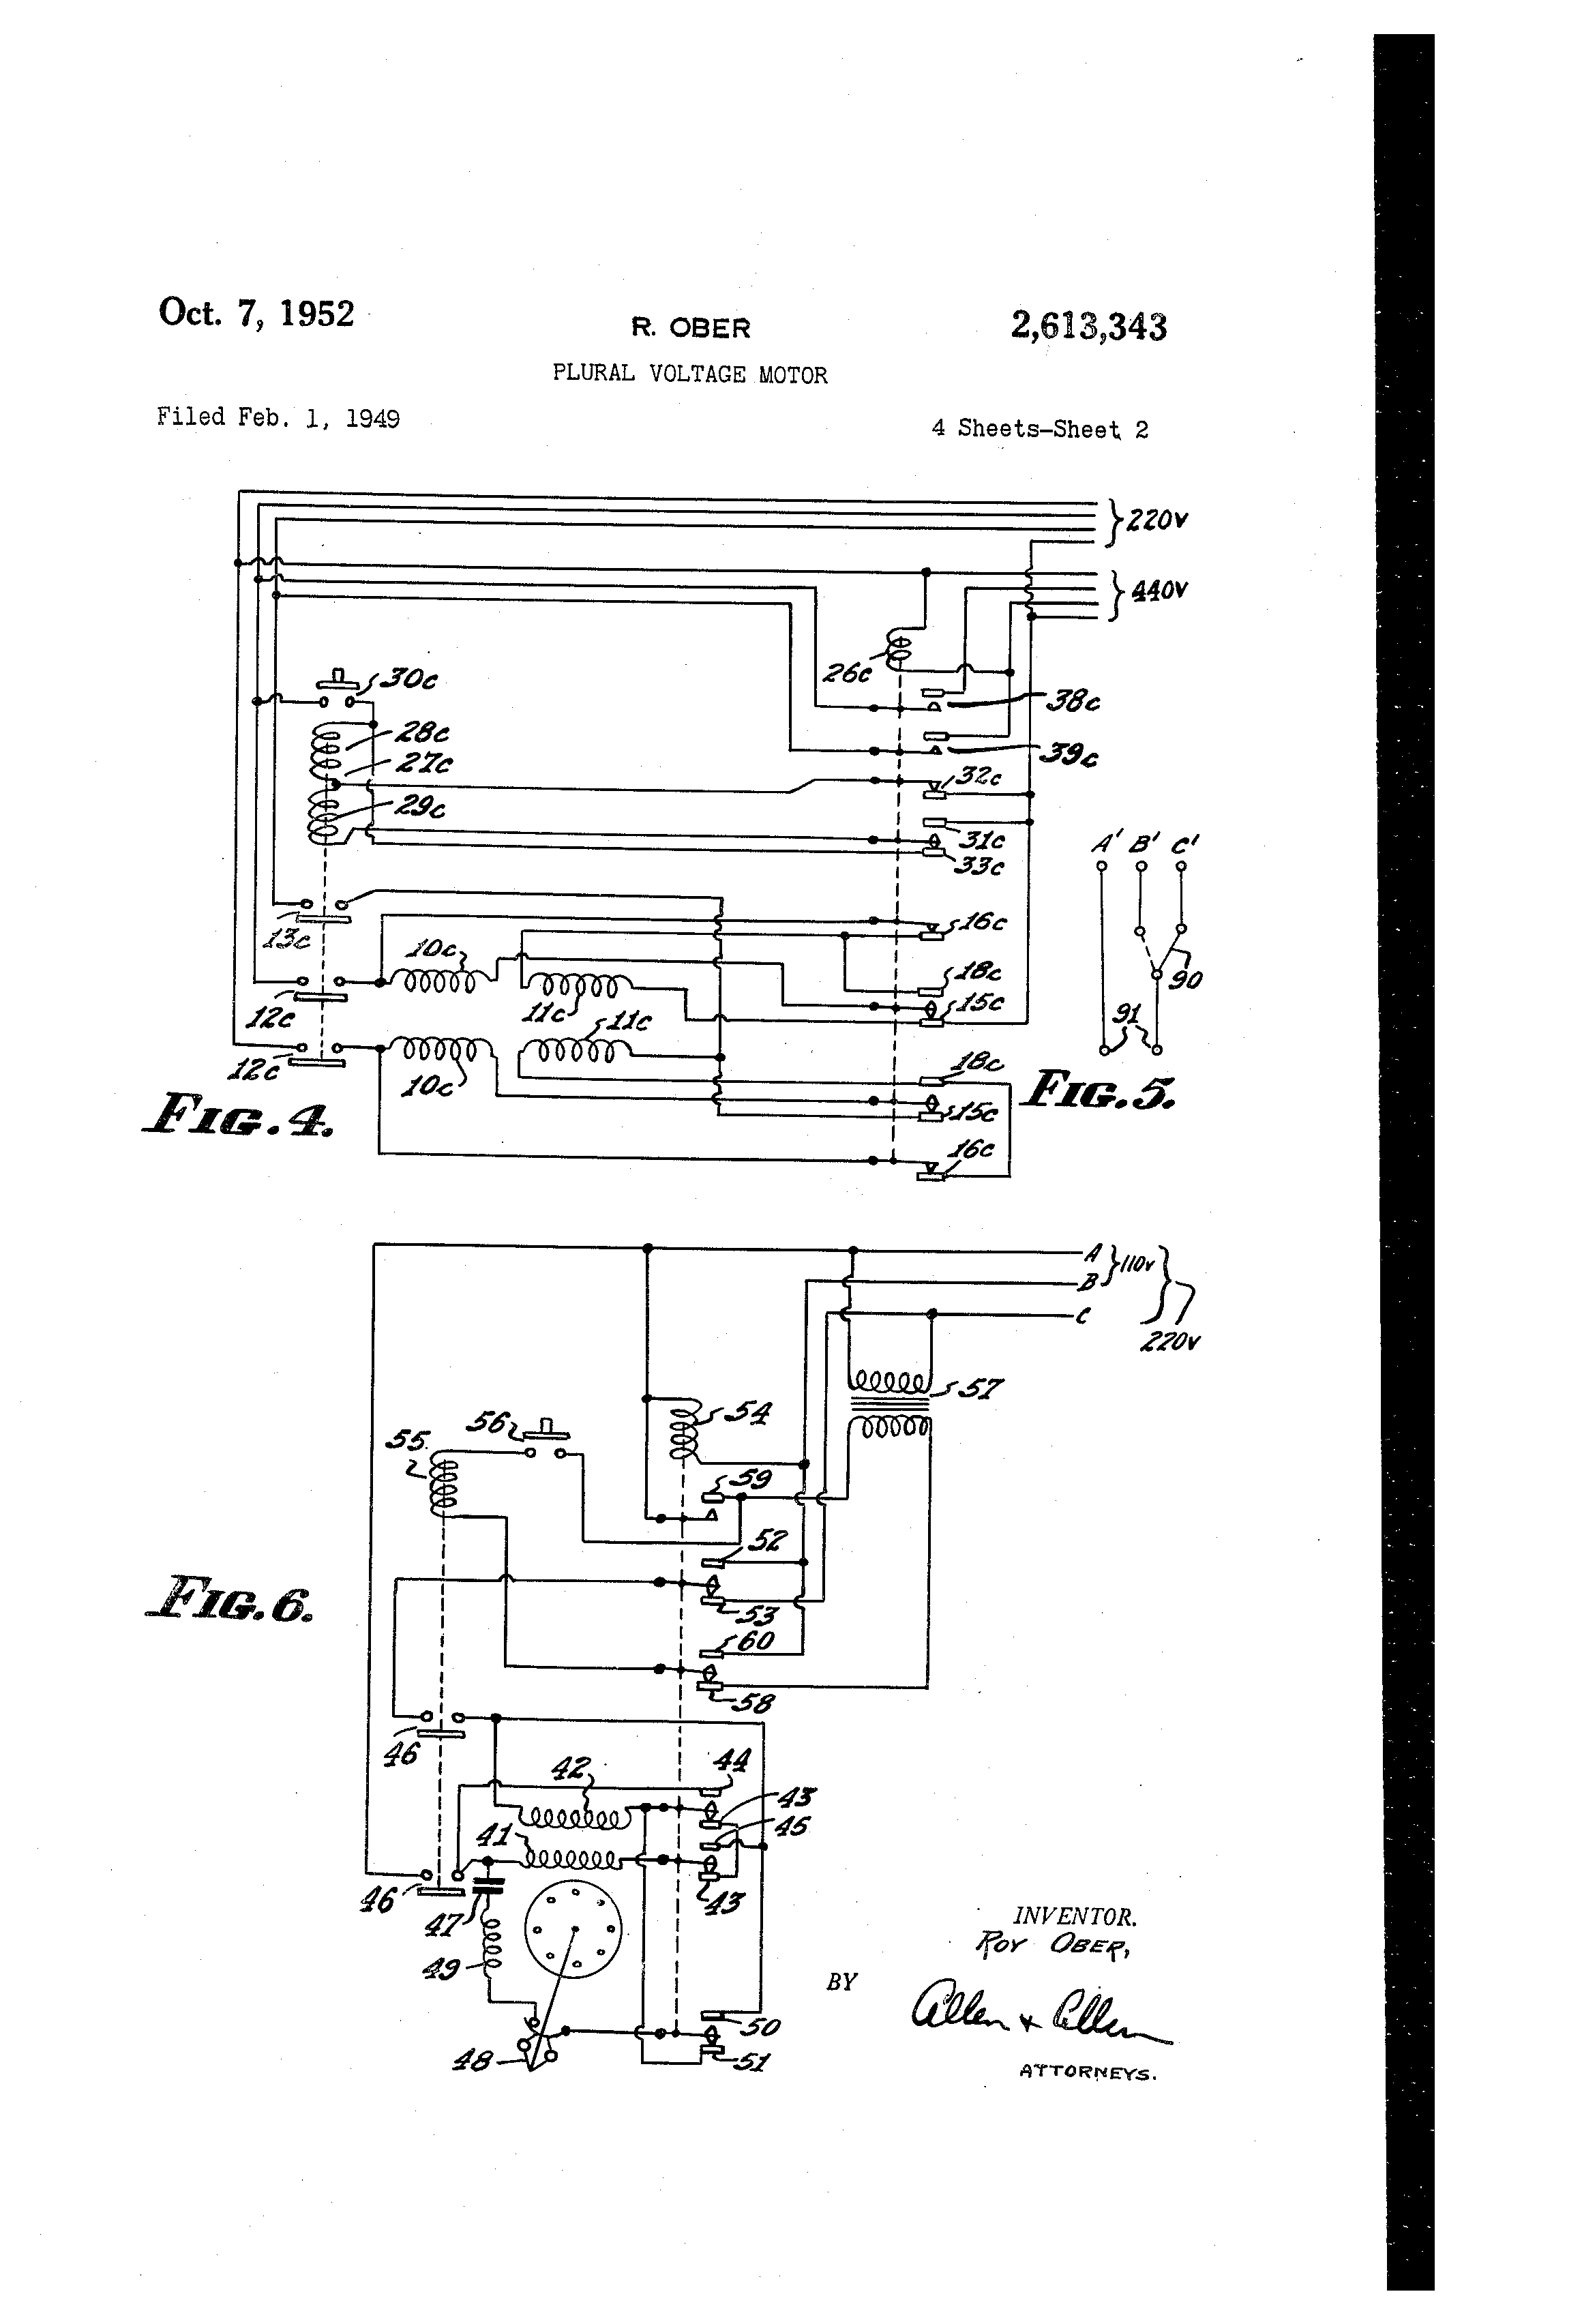 US2613343 1 patent us2613343 plural voltage motor google patents robbins and myers fan motor wiring diagram at crackthecode.co